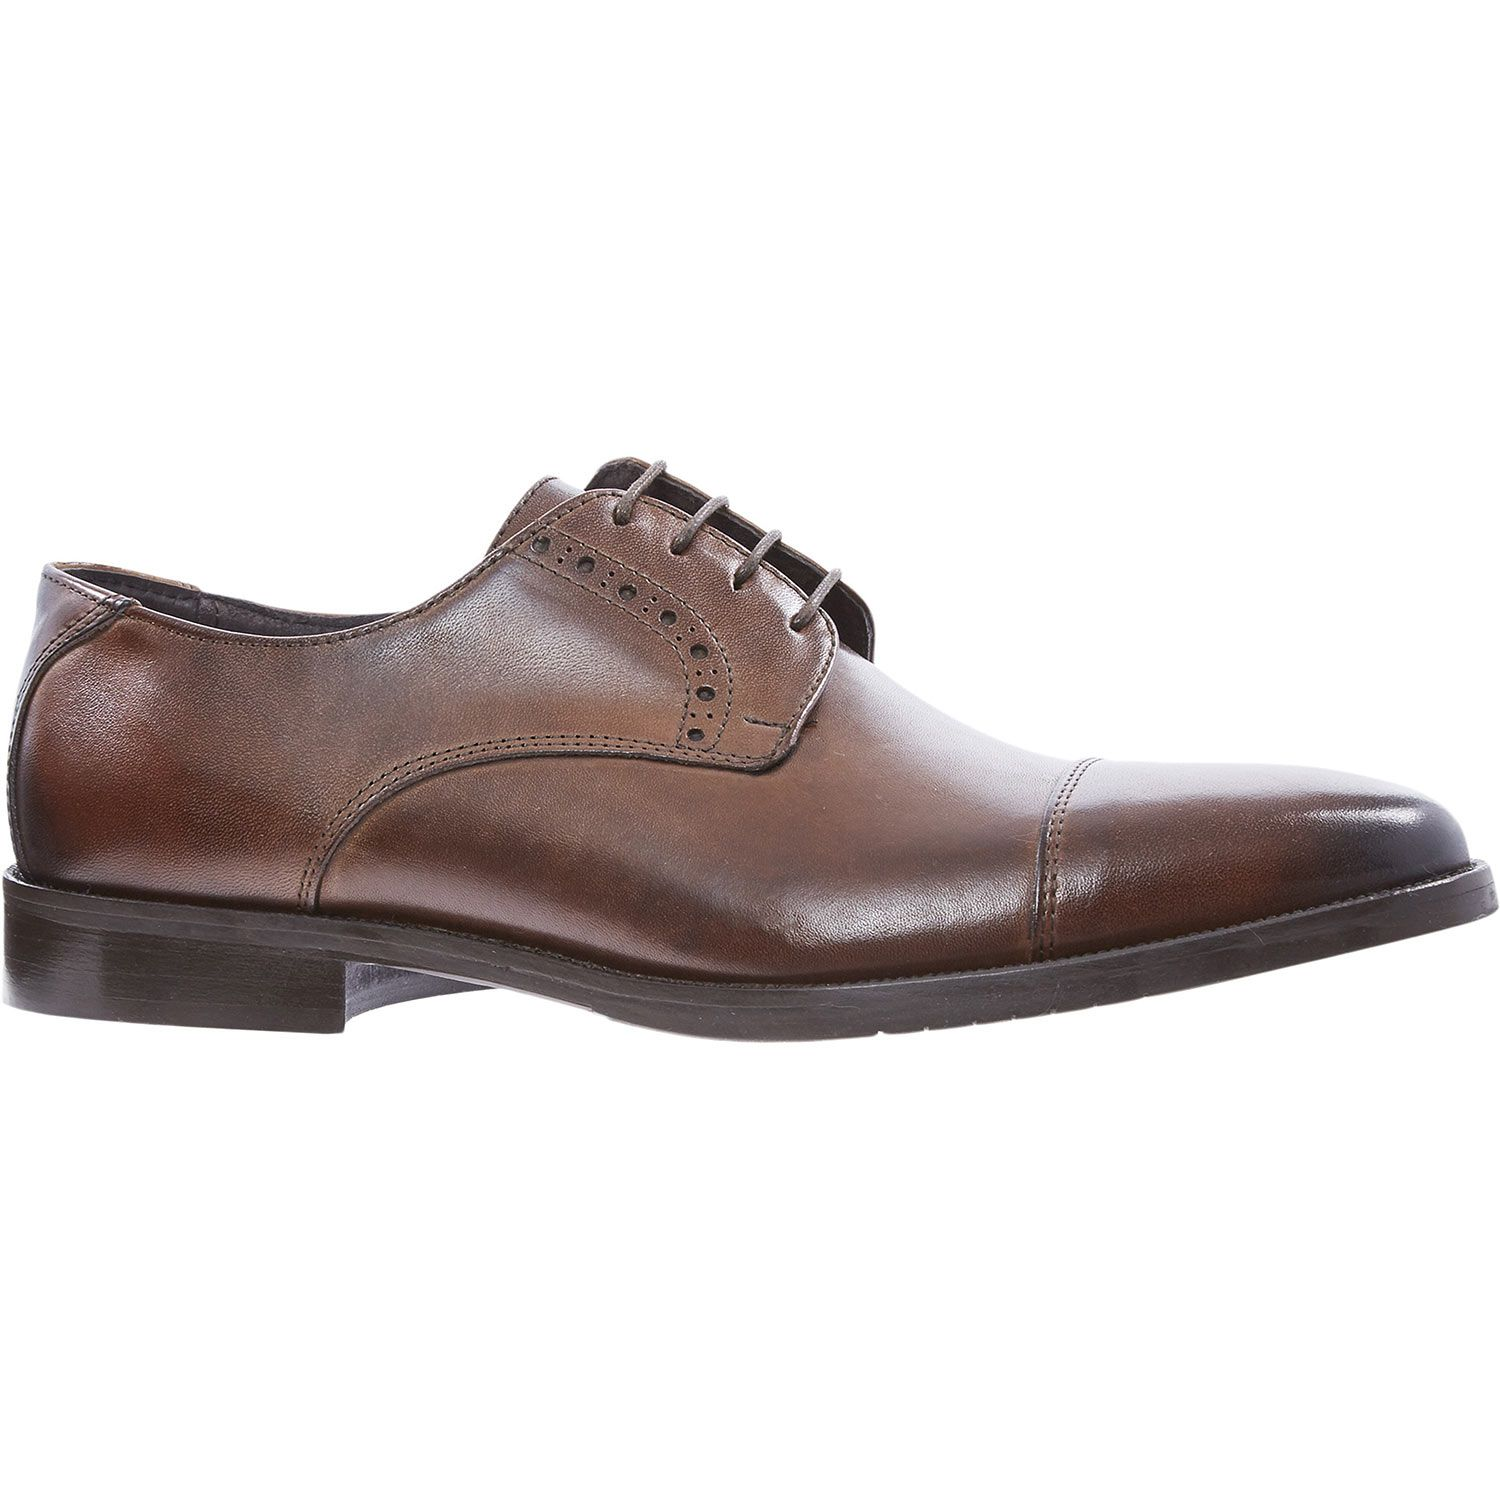 quot o mario quot brown leather derby shoes tk maxx shopping